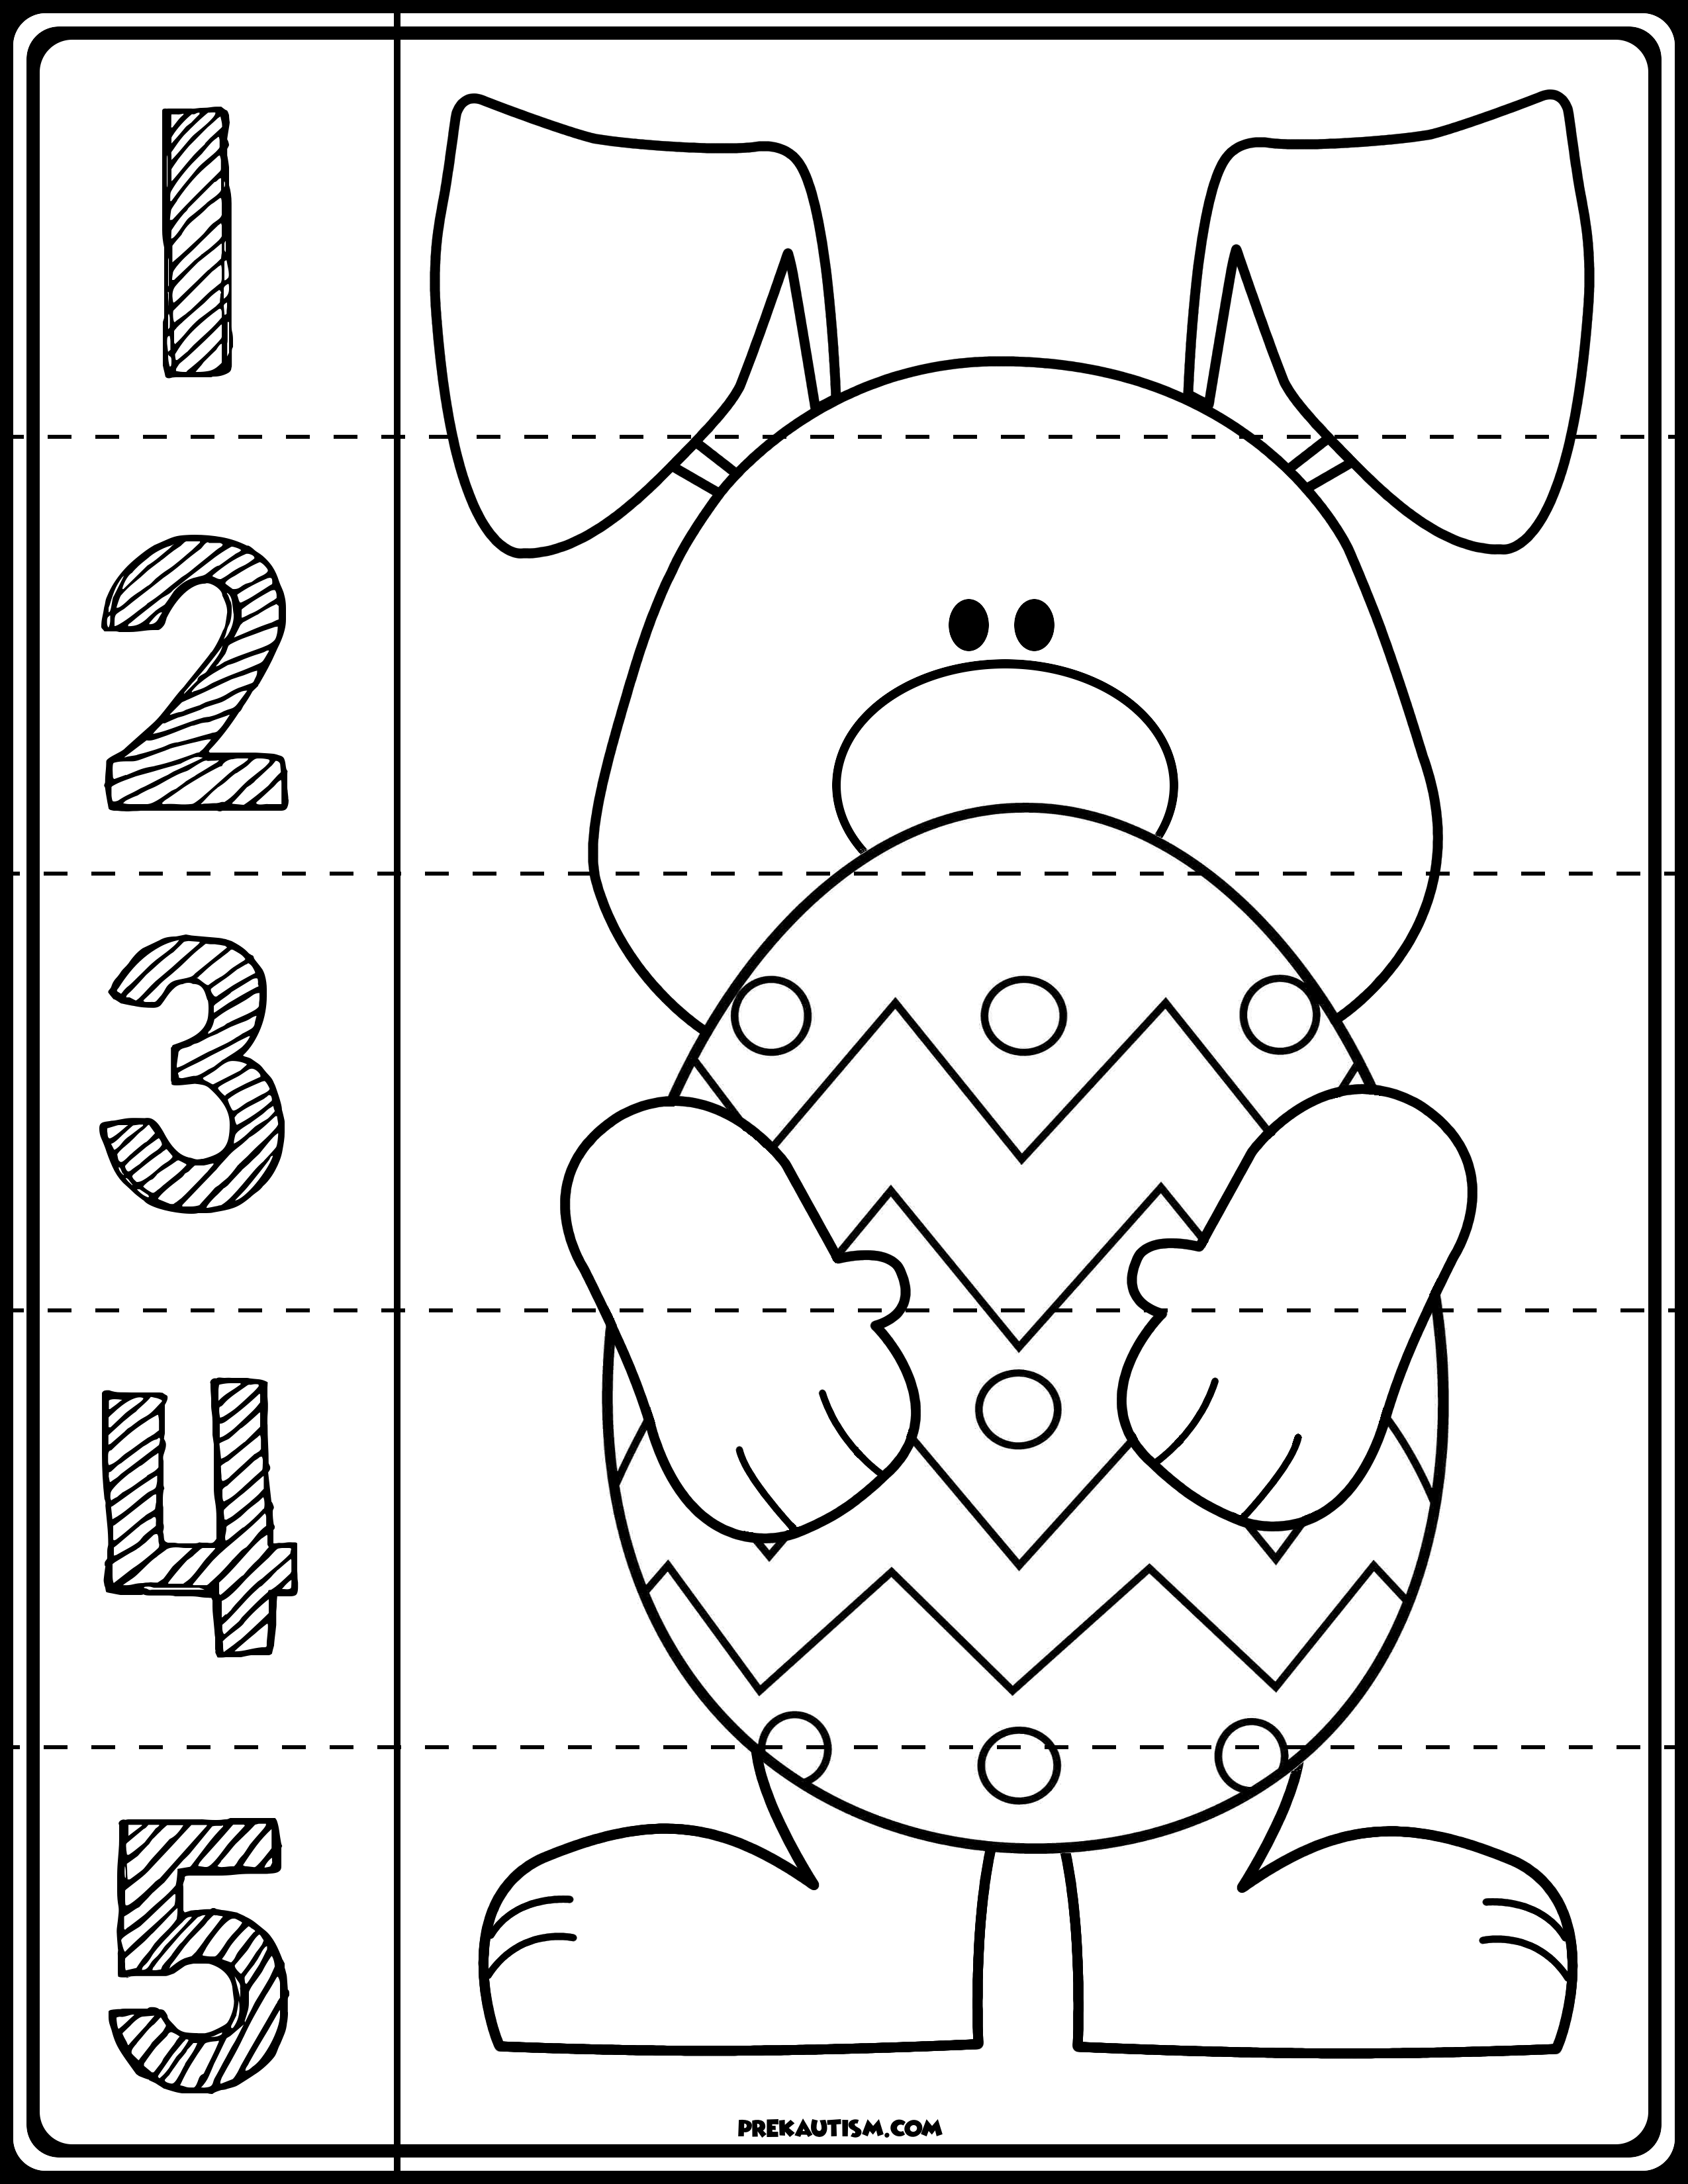 Easter Bunny Line Puzzles With Images